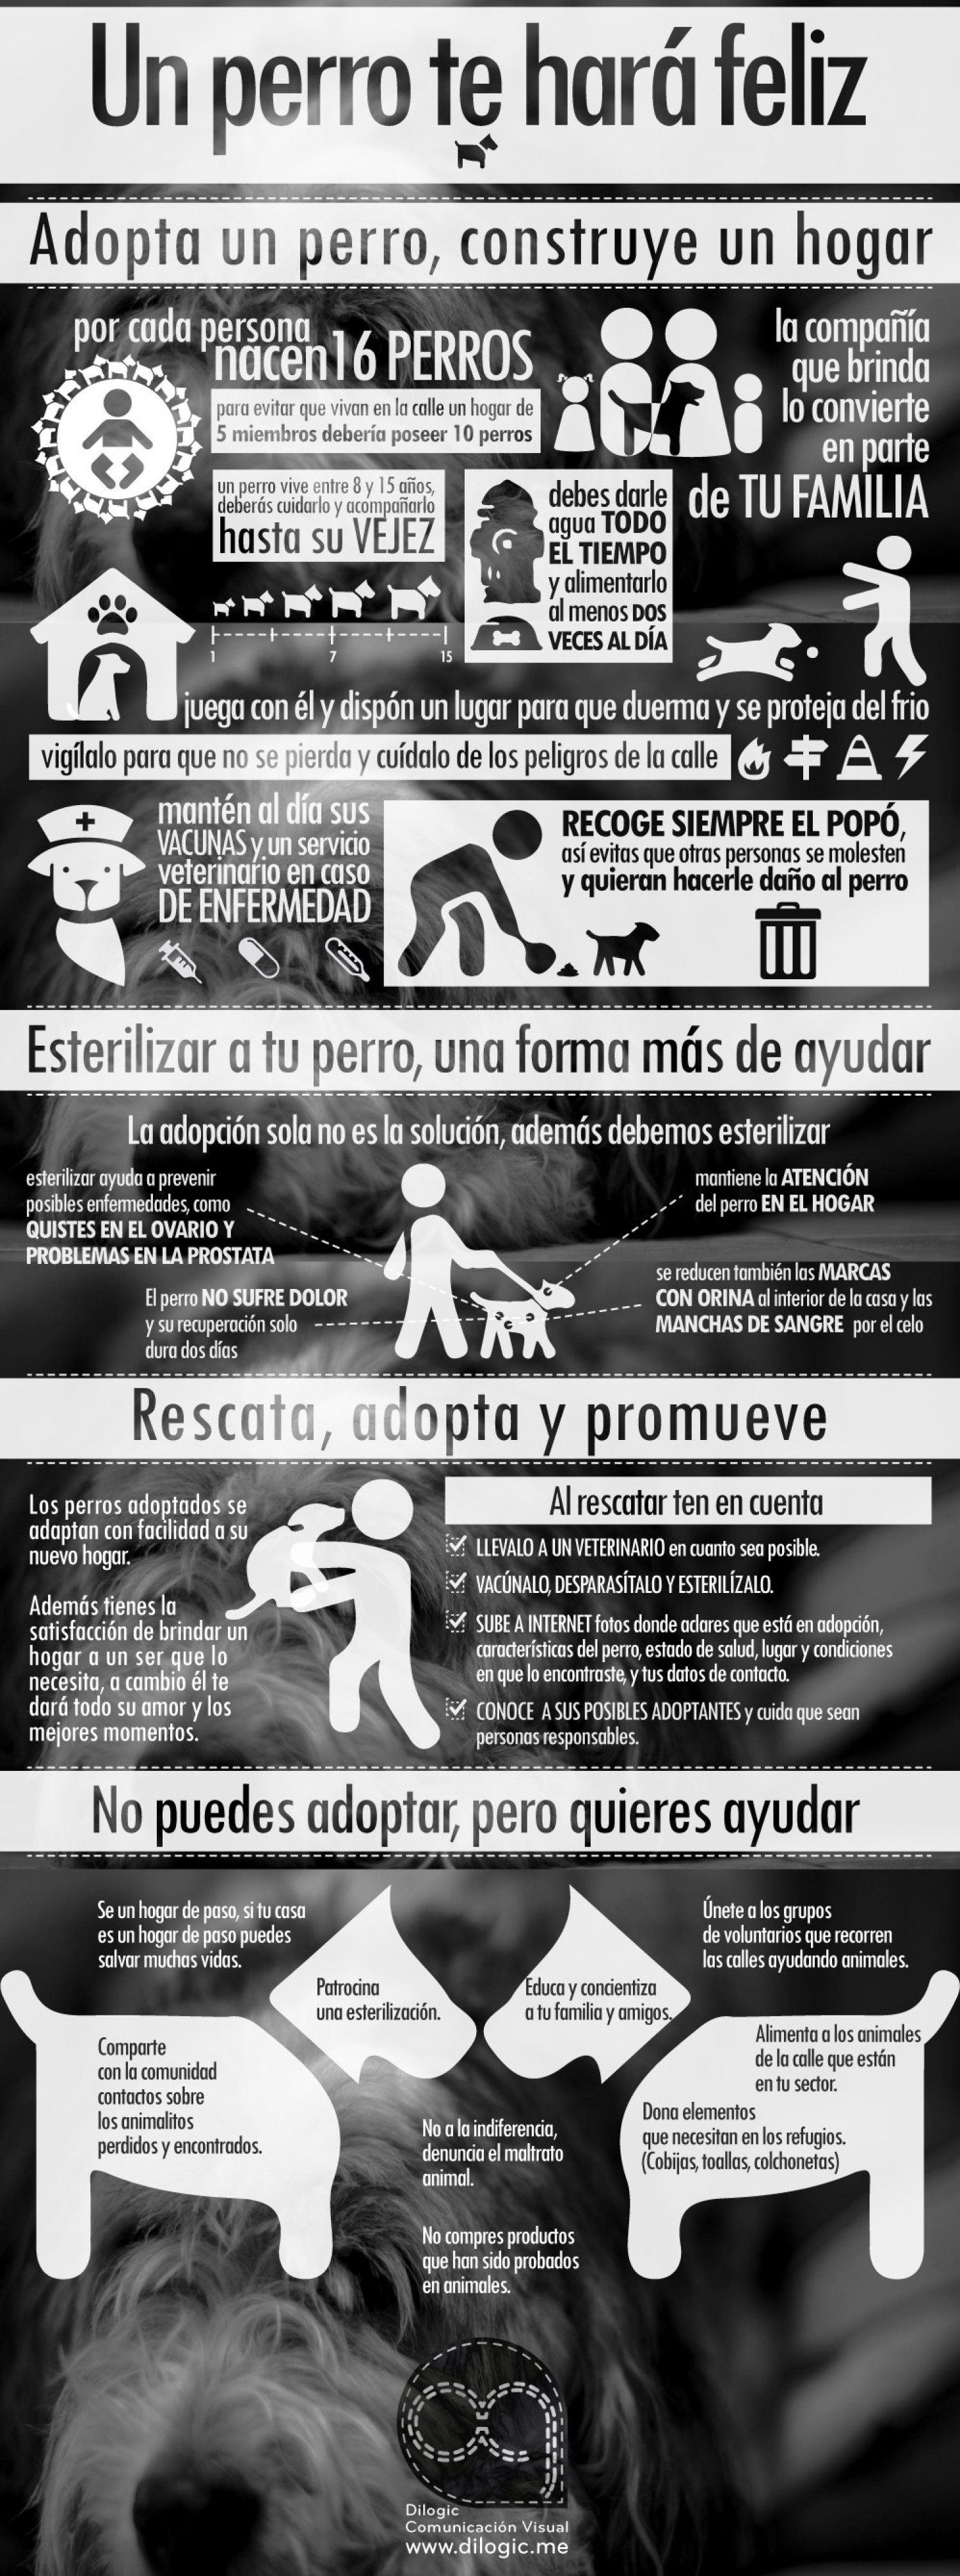 Un perro te hará feliz / A dog will make you happy Infographic